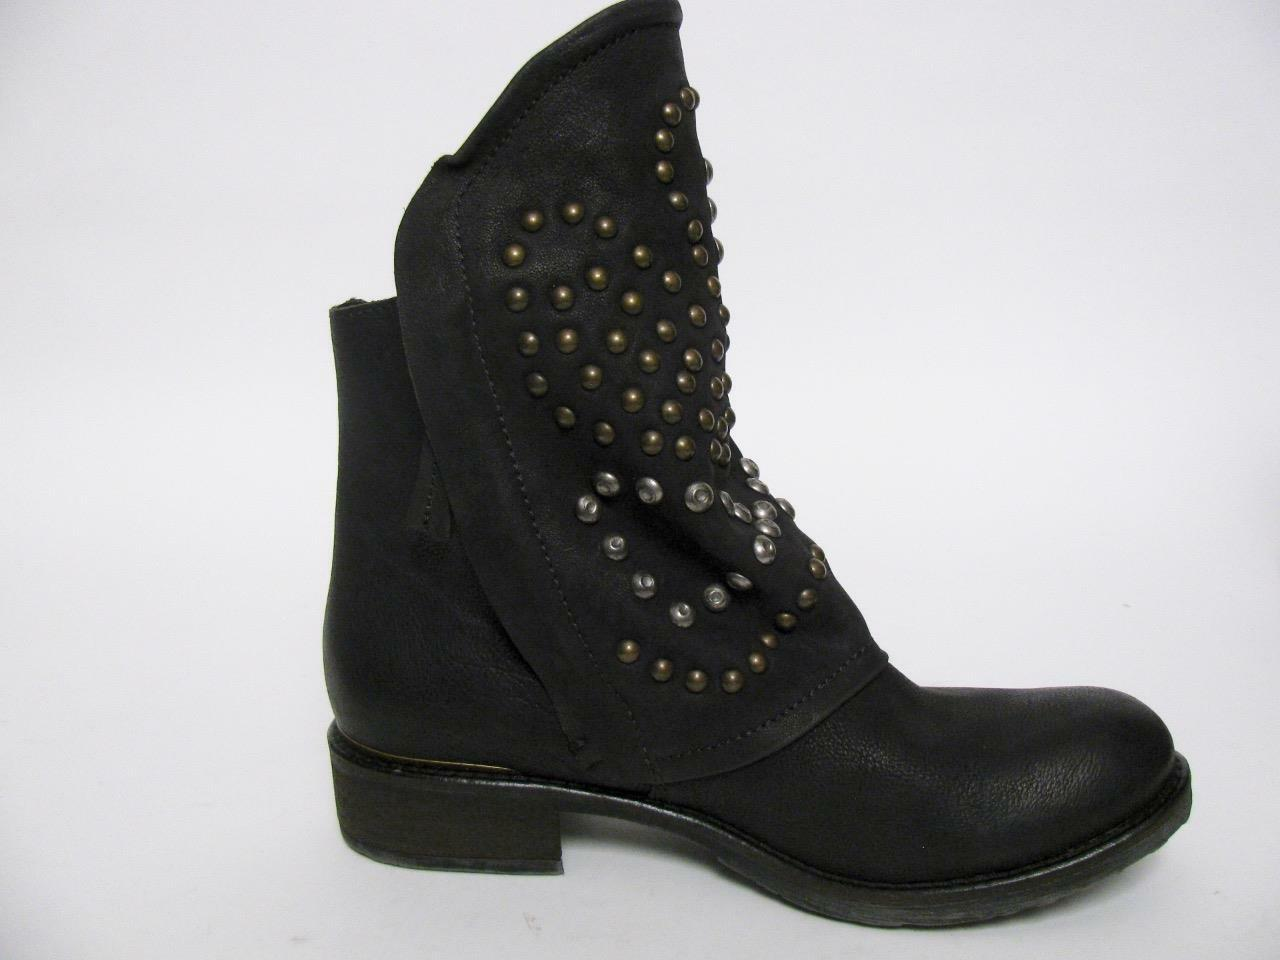 FRED SEGAL FEET BLACK LEATHER SILVER BRASS STUDDED SLOUCH MOTO BOOTS SHOES41